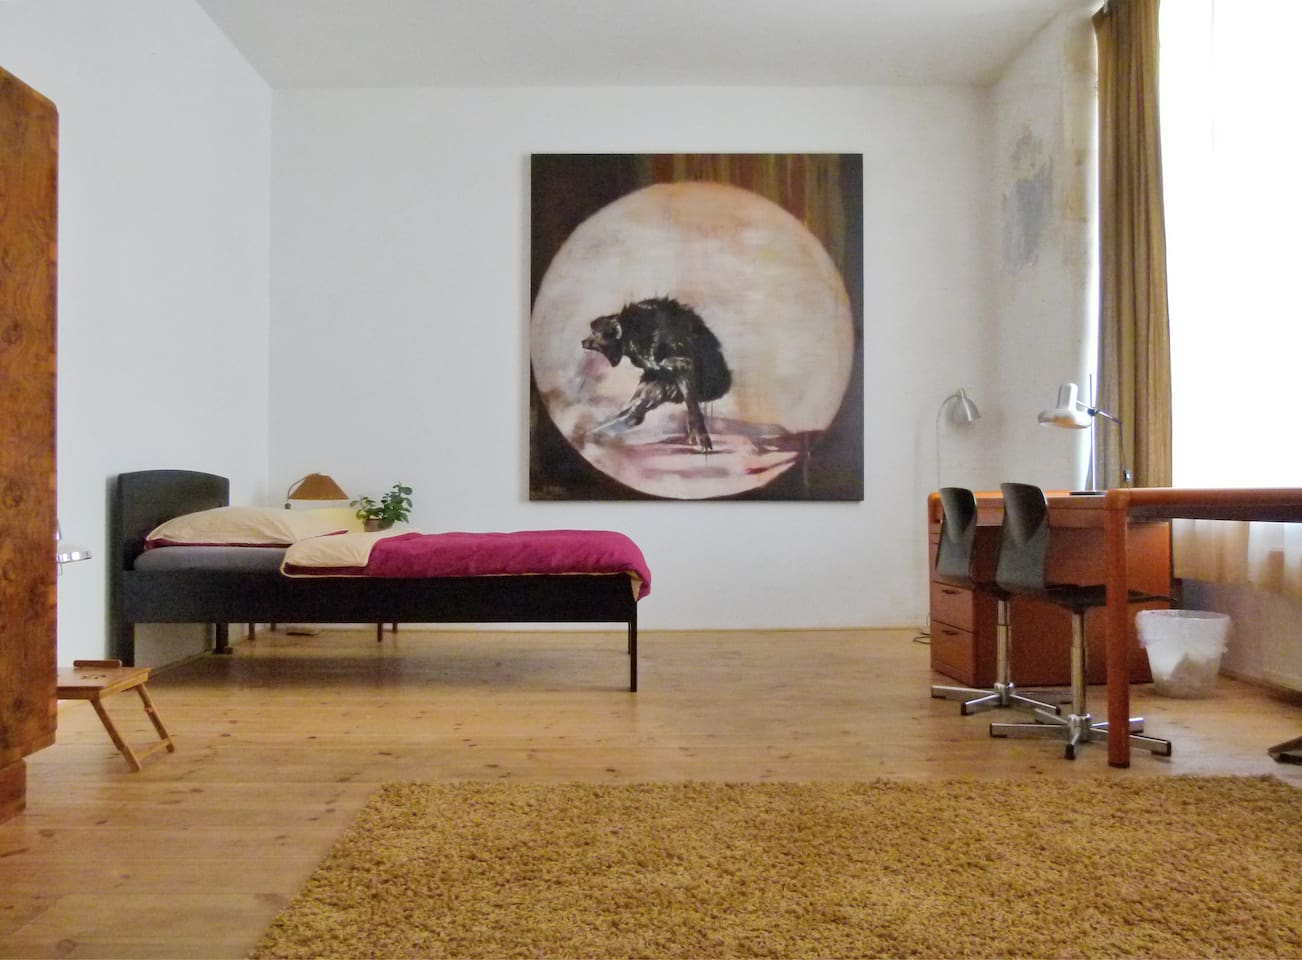 A large urban room with stylish furniture and Fine art.